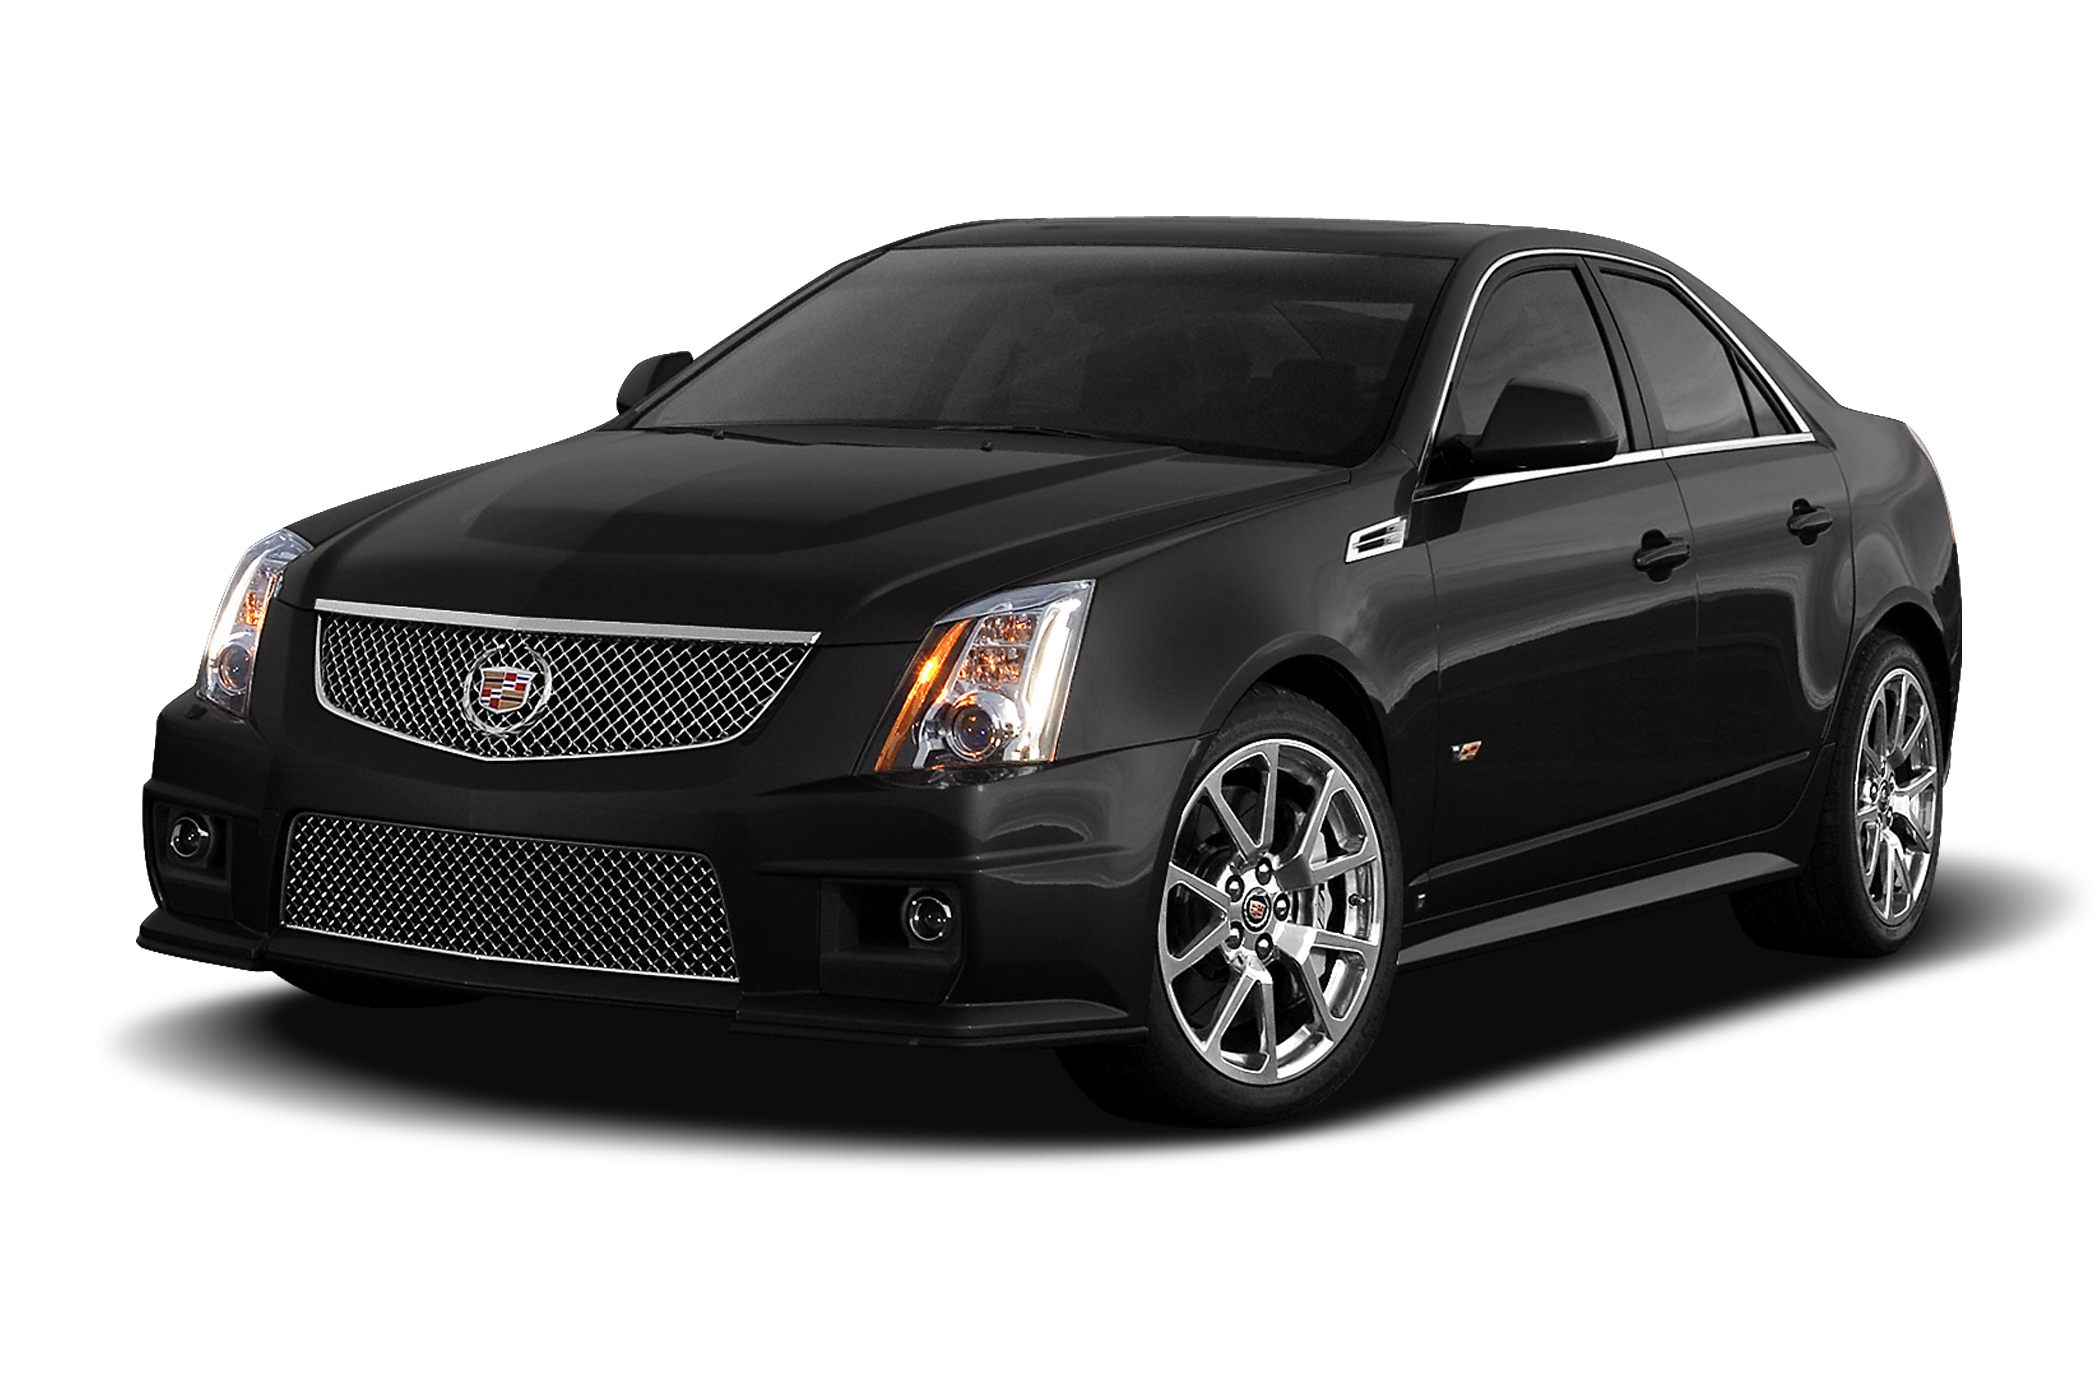 2009 Cadillac Cts V Specs And Prices